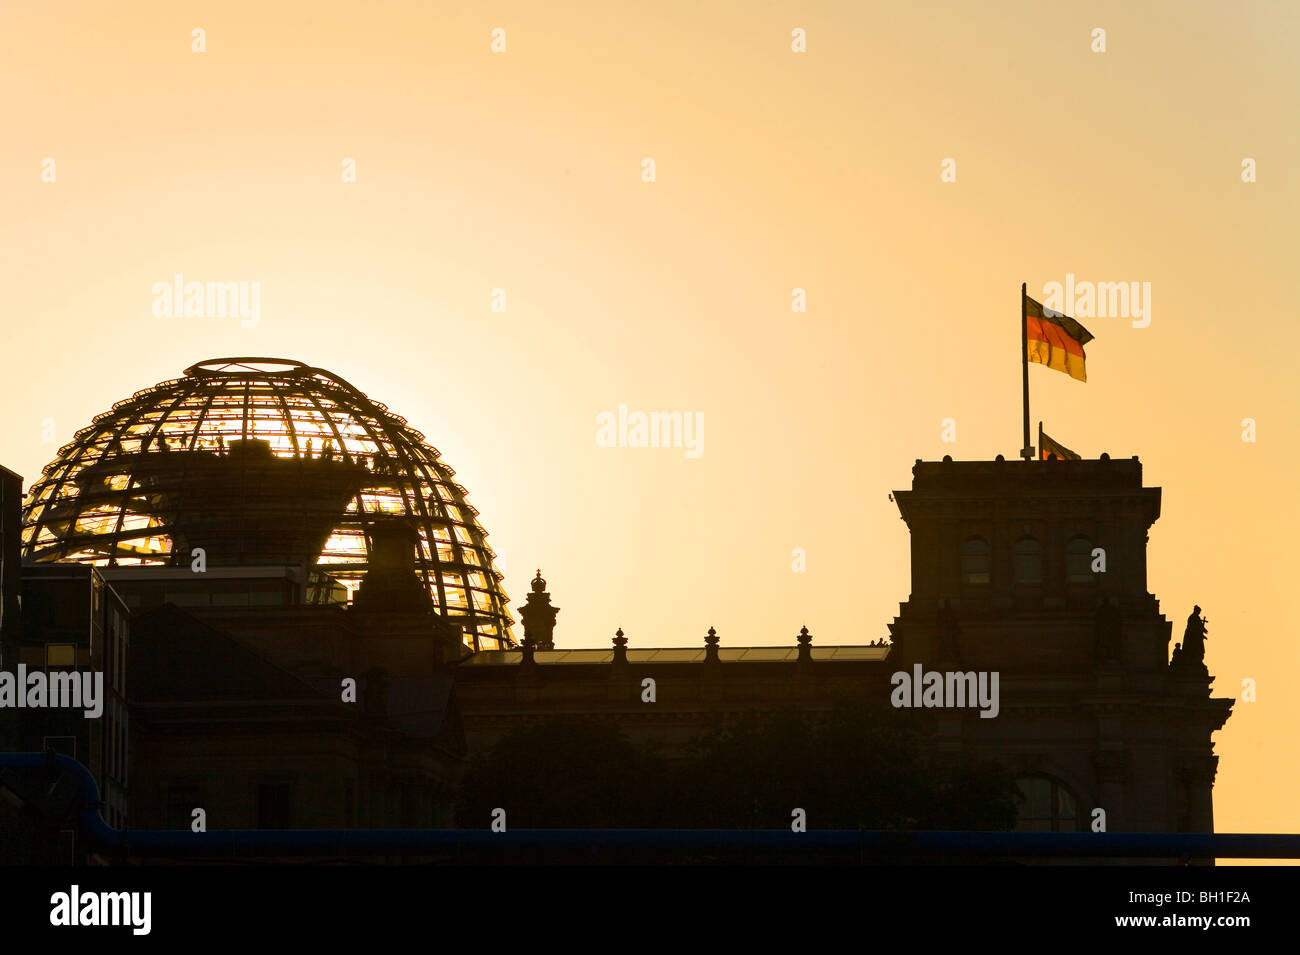 silhouette of German parliament, Reichstag dome at sunset, Berlin, Germany Stock Photo